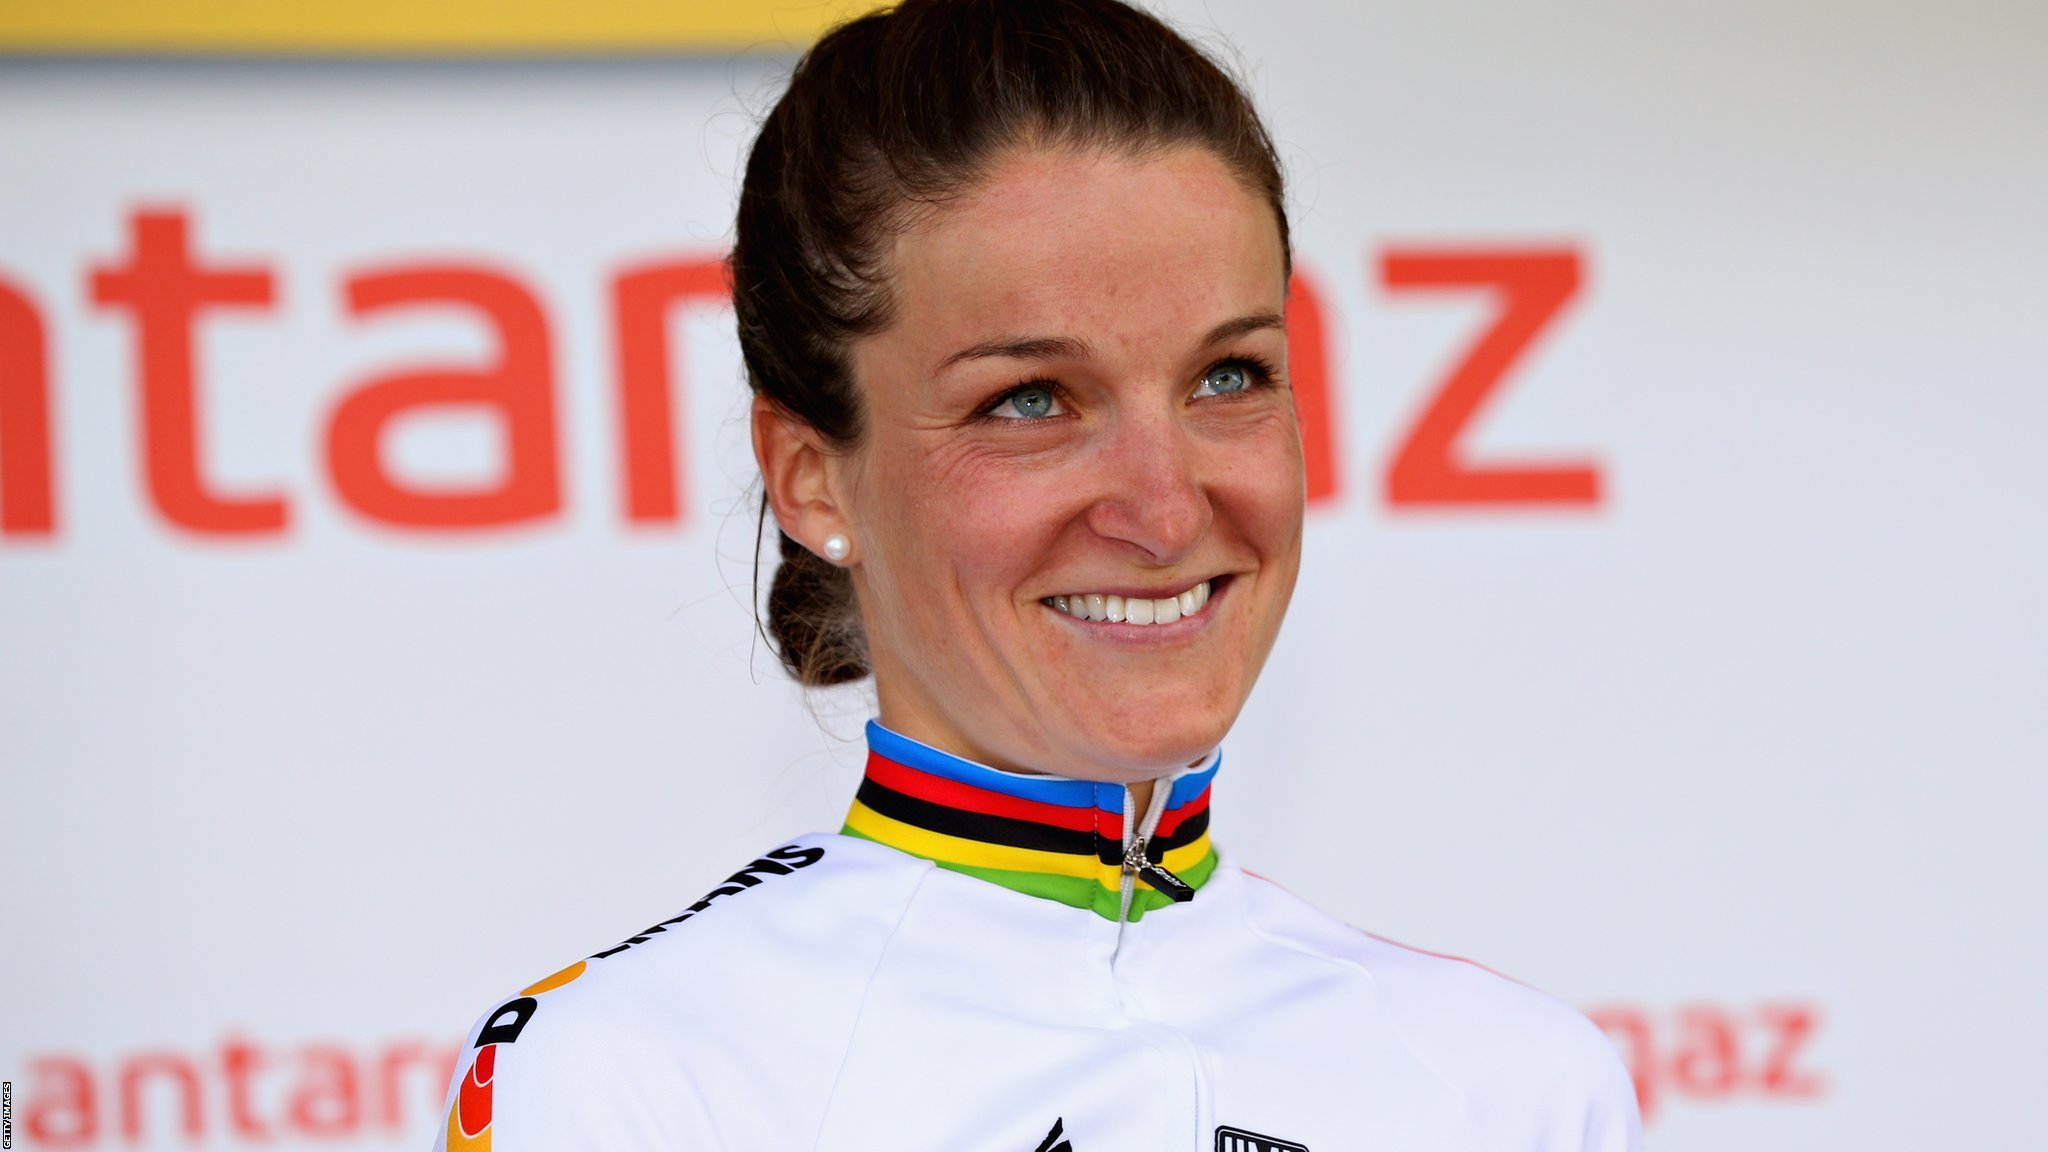 Lizzie Deignan feared career was over before signing for Trek